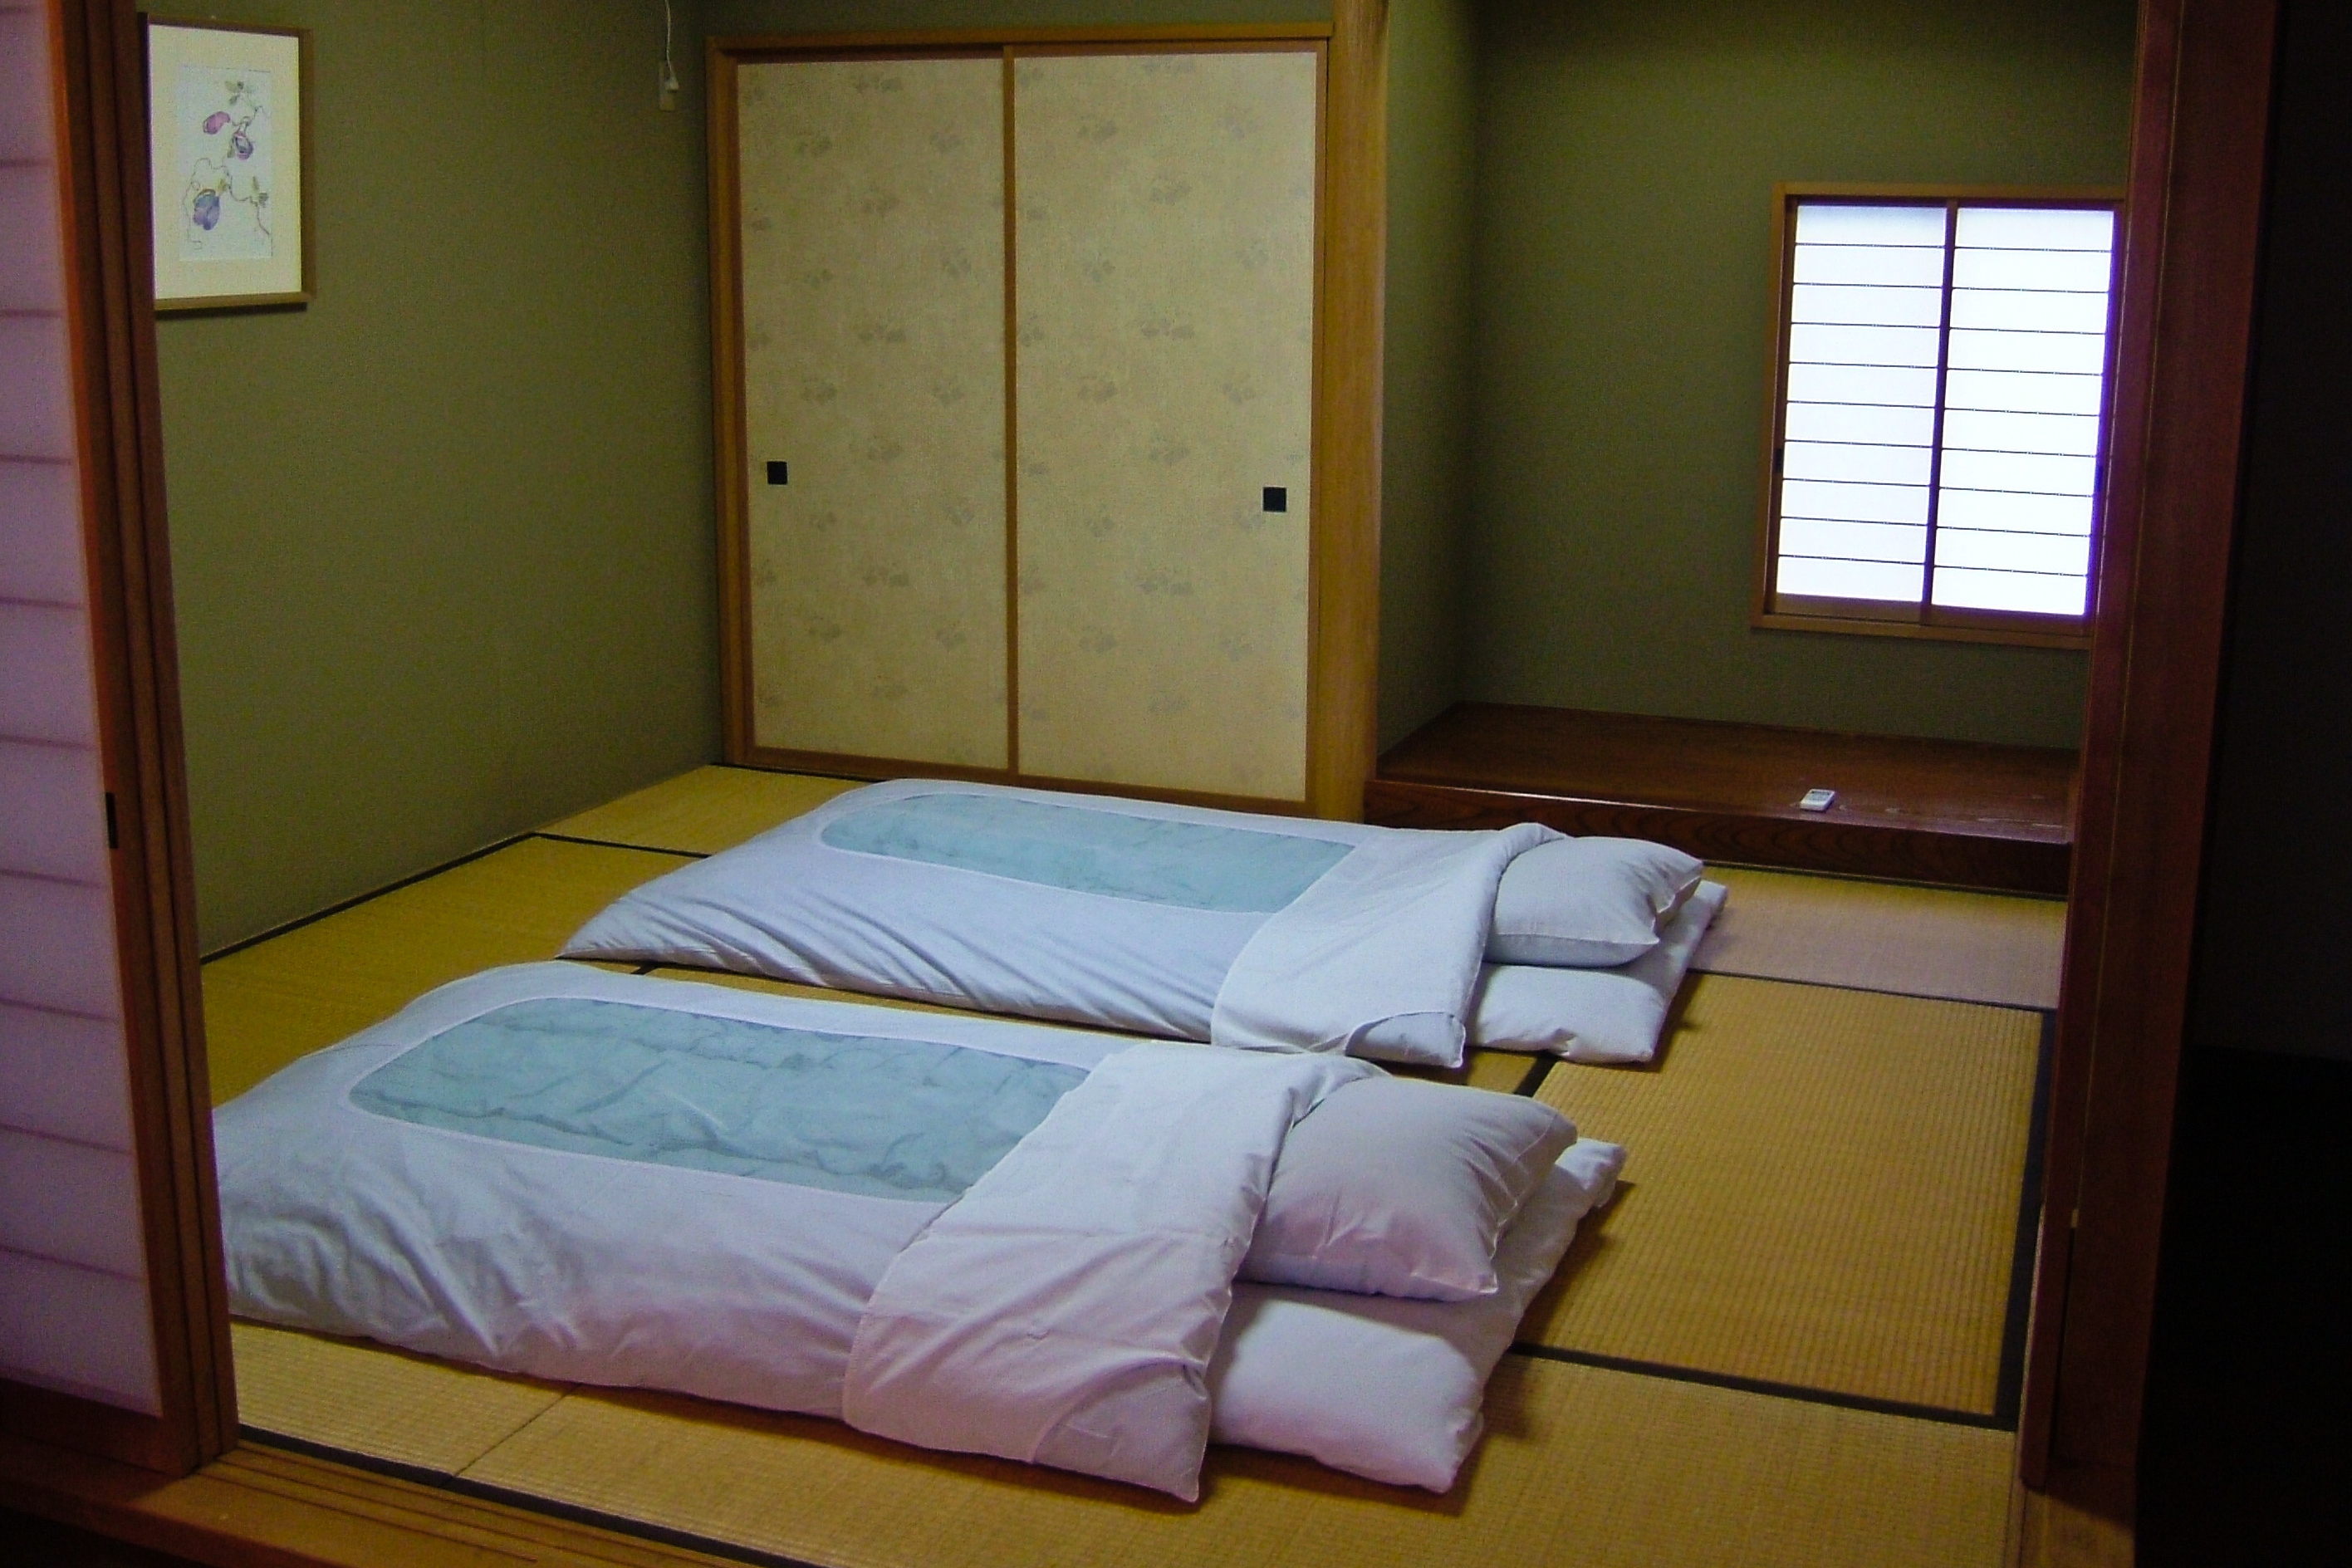 Futon Japan The Basics About Futons Ideas 4 Homes